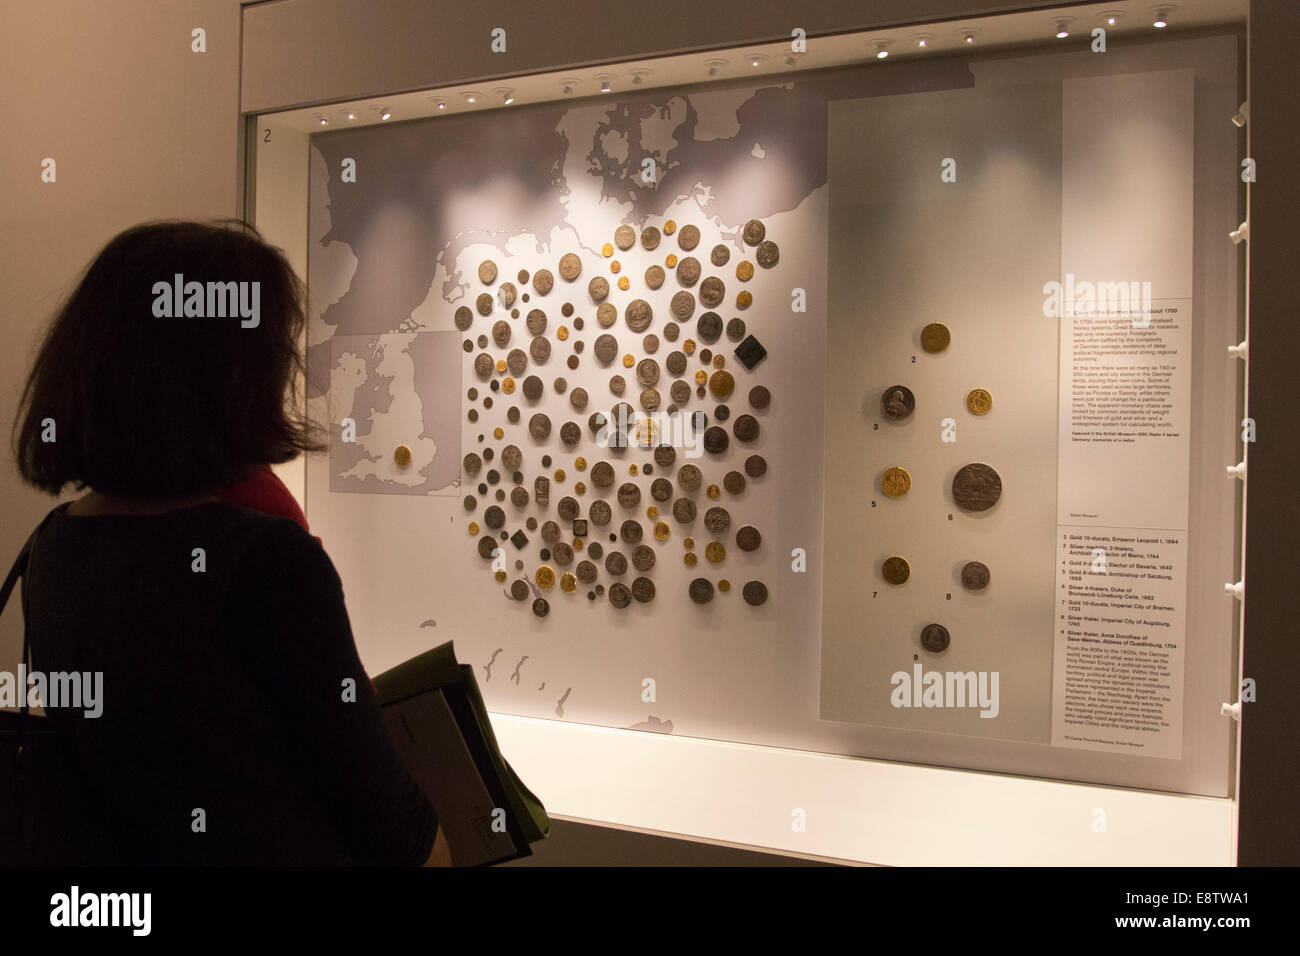 The exhibition 'Germany - Memories of a Nation' opens at the British Museum, London. - Stock Image